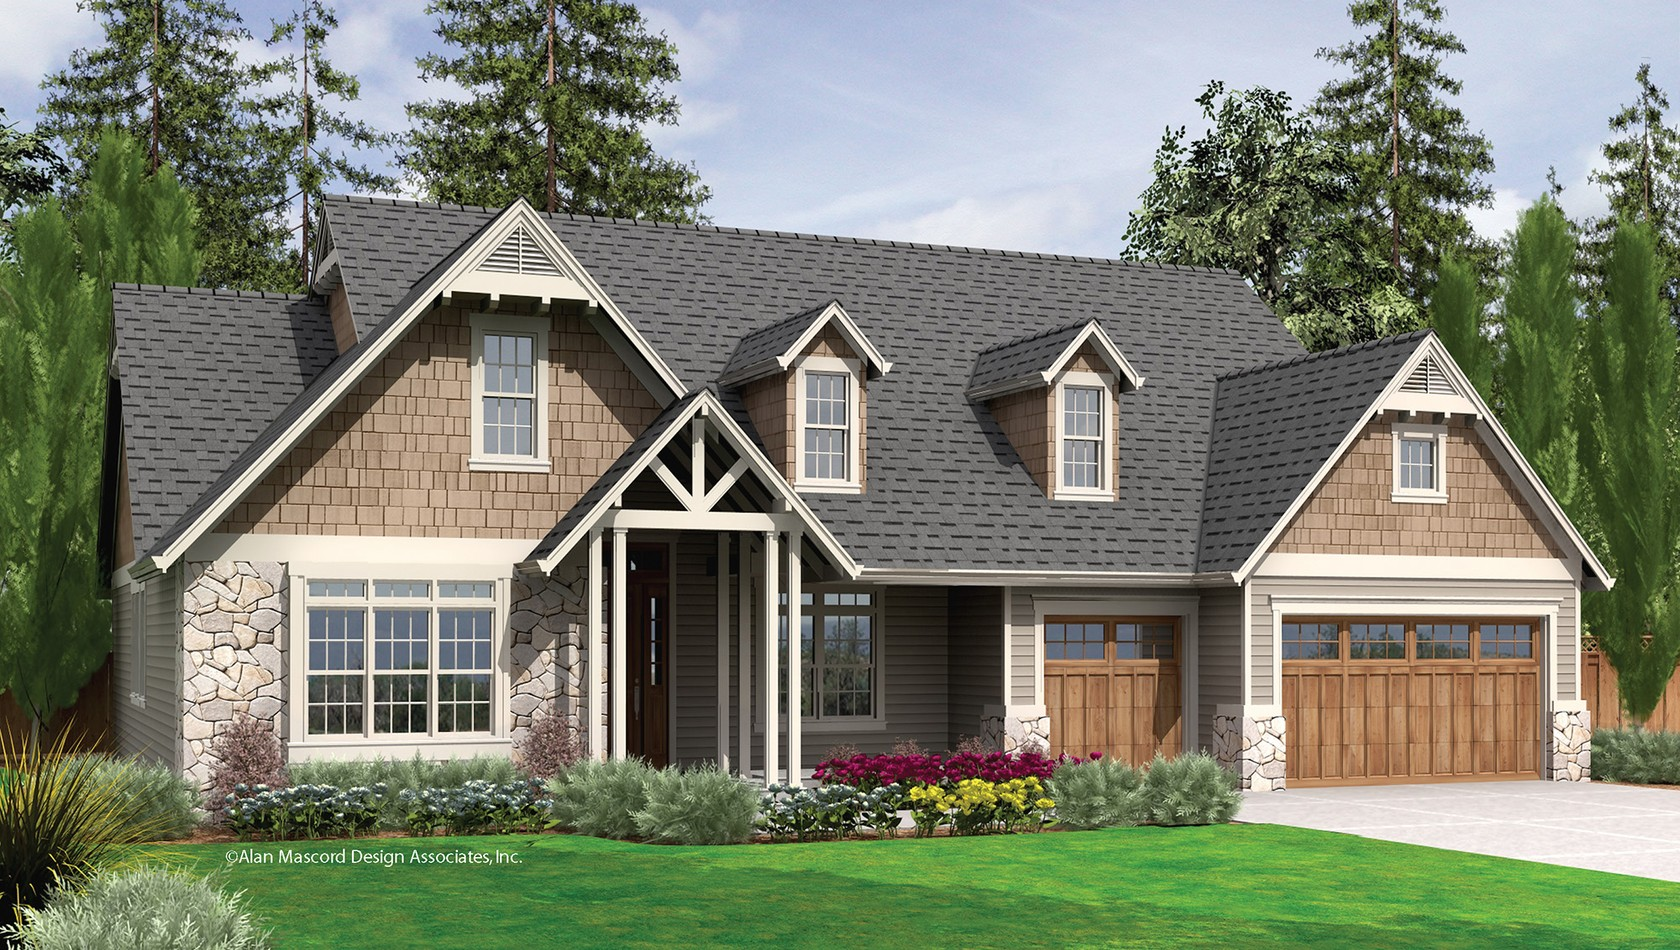 Main image for house plan B22157: The Alton